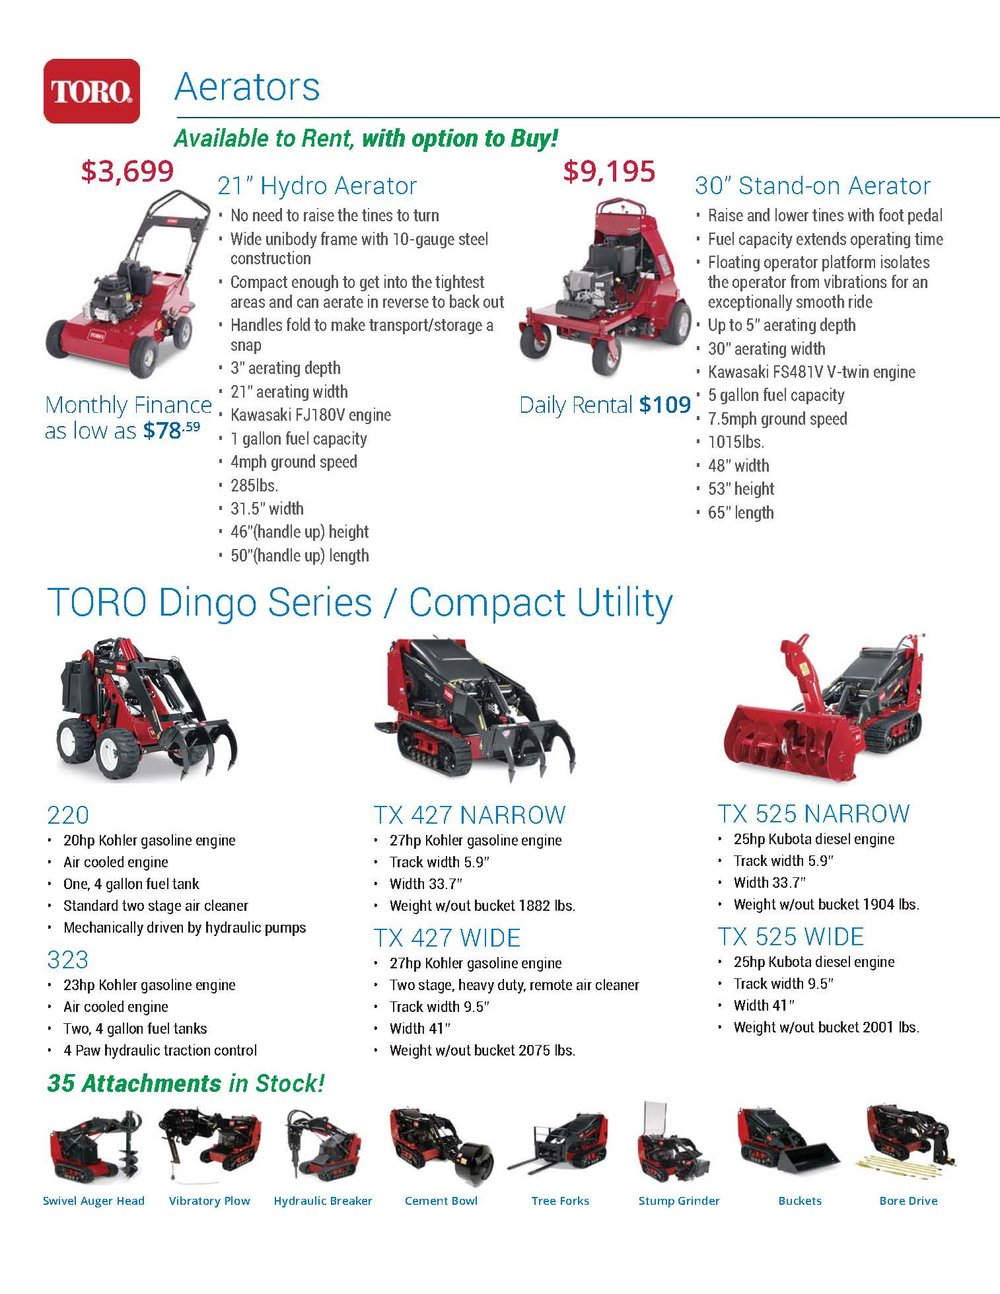 2015 Equipment Brochure 1.3_Page_3.jpg